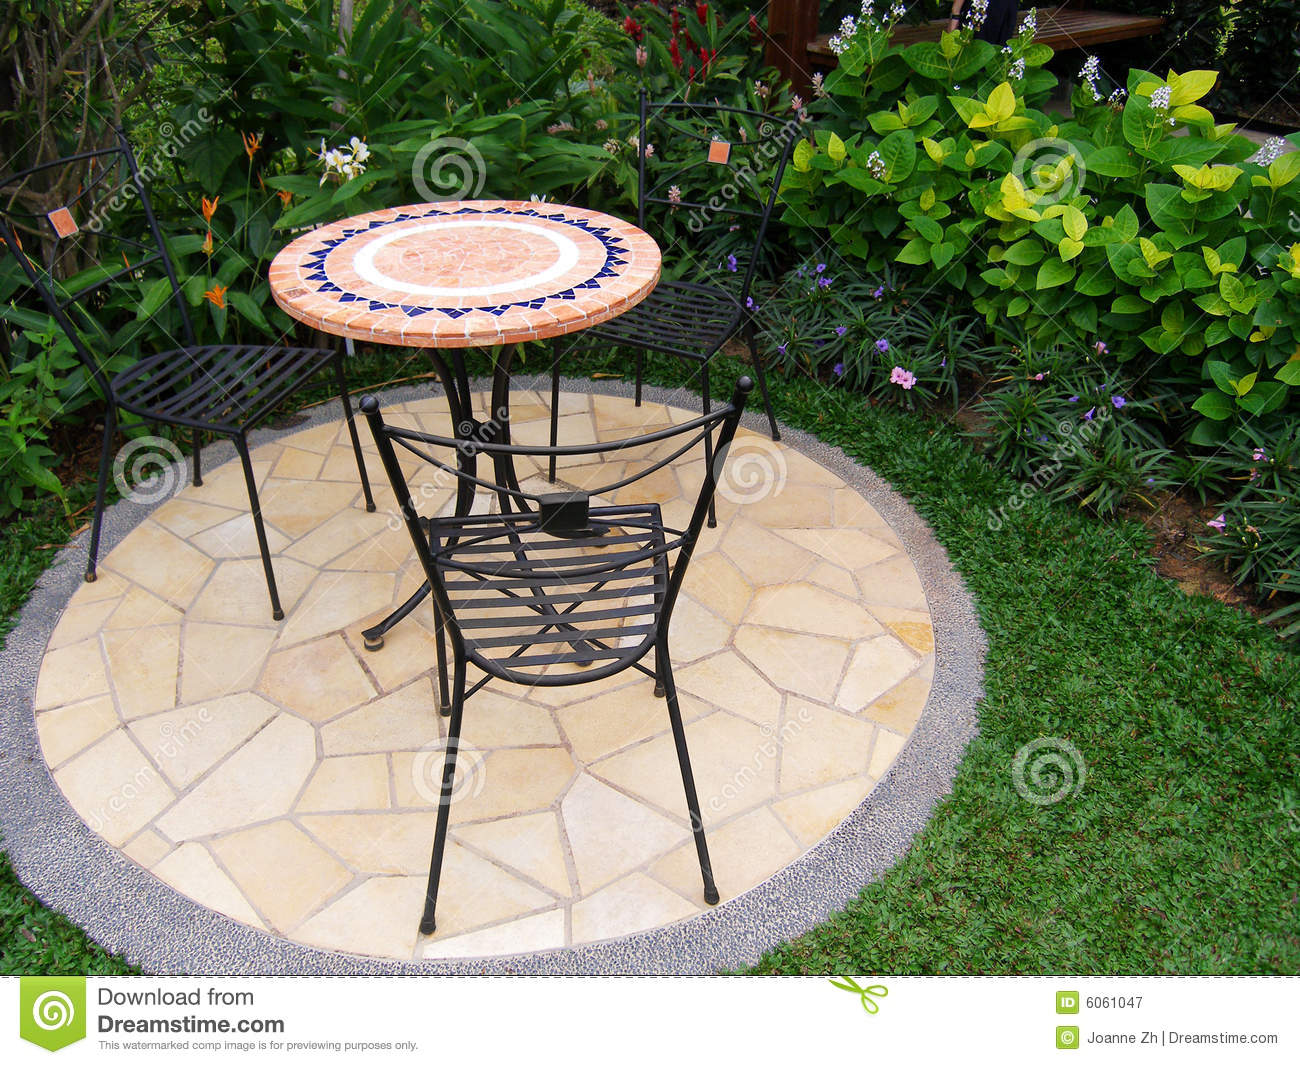 Outdoors patio with furniture